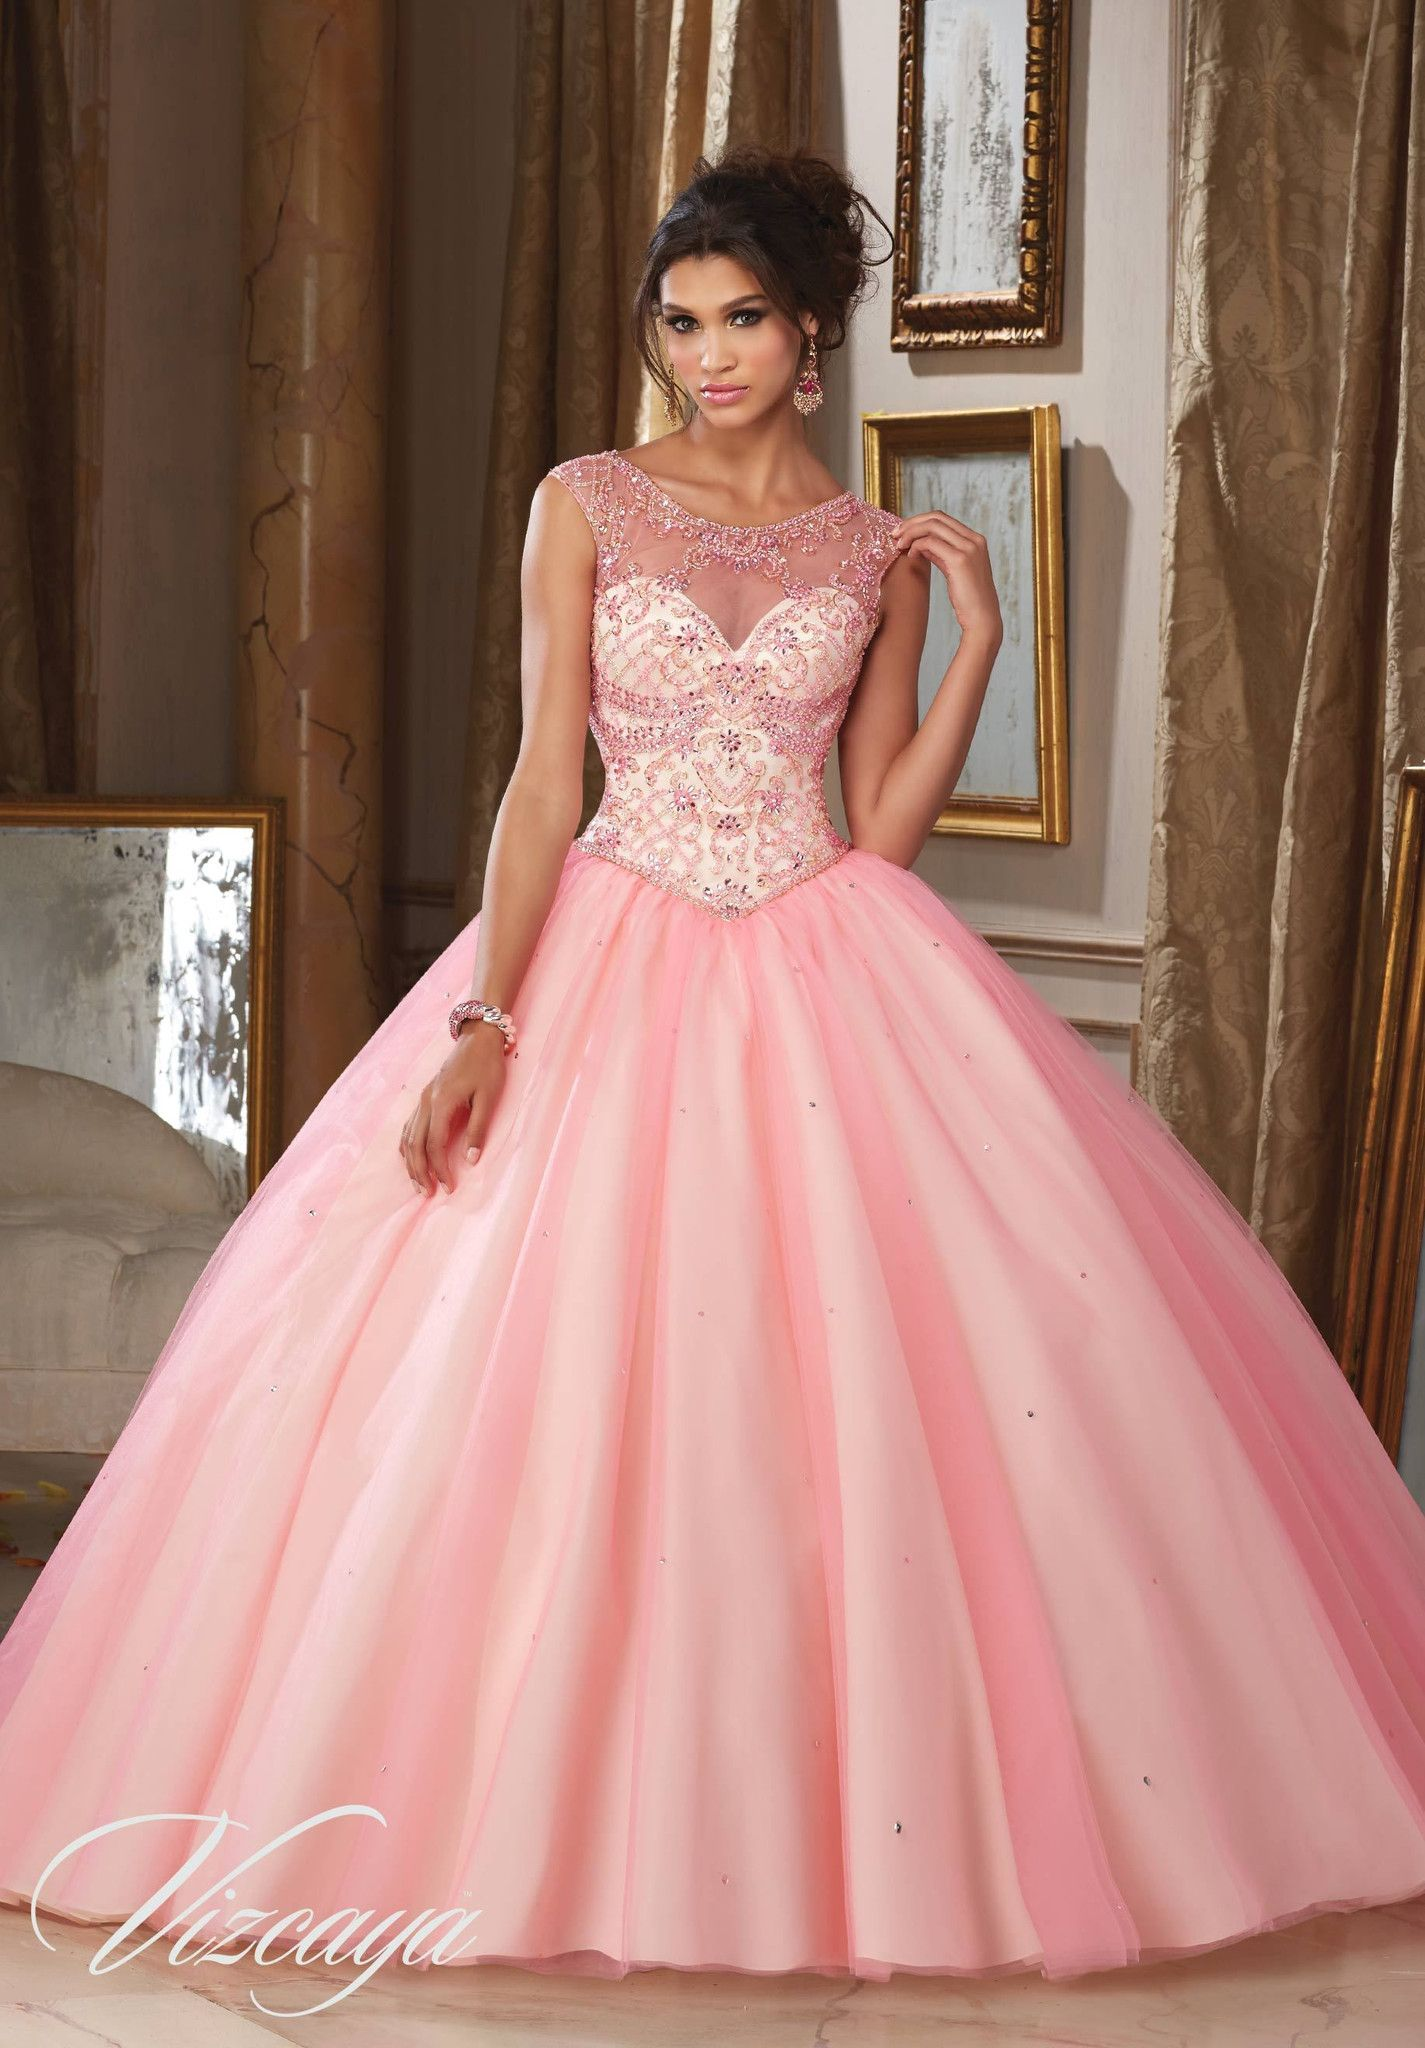 Mori Lee Quinceanera Dress 89112 | Vestidos de quinceañera, Vestidos ...